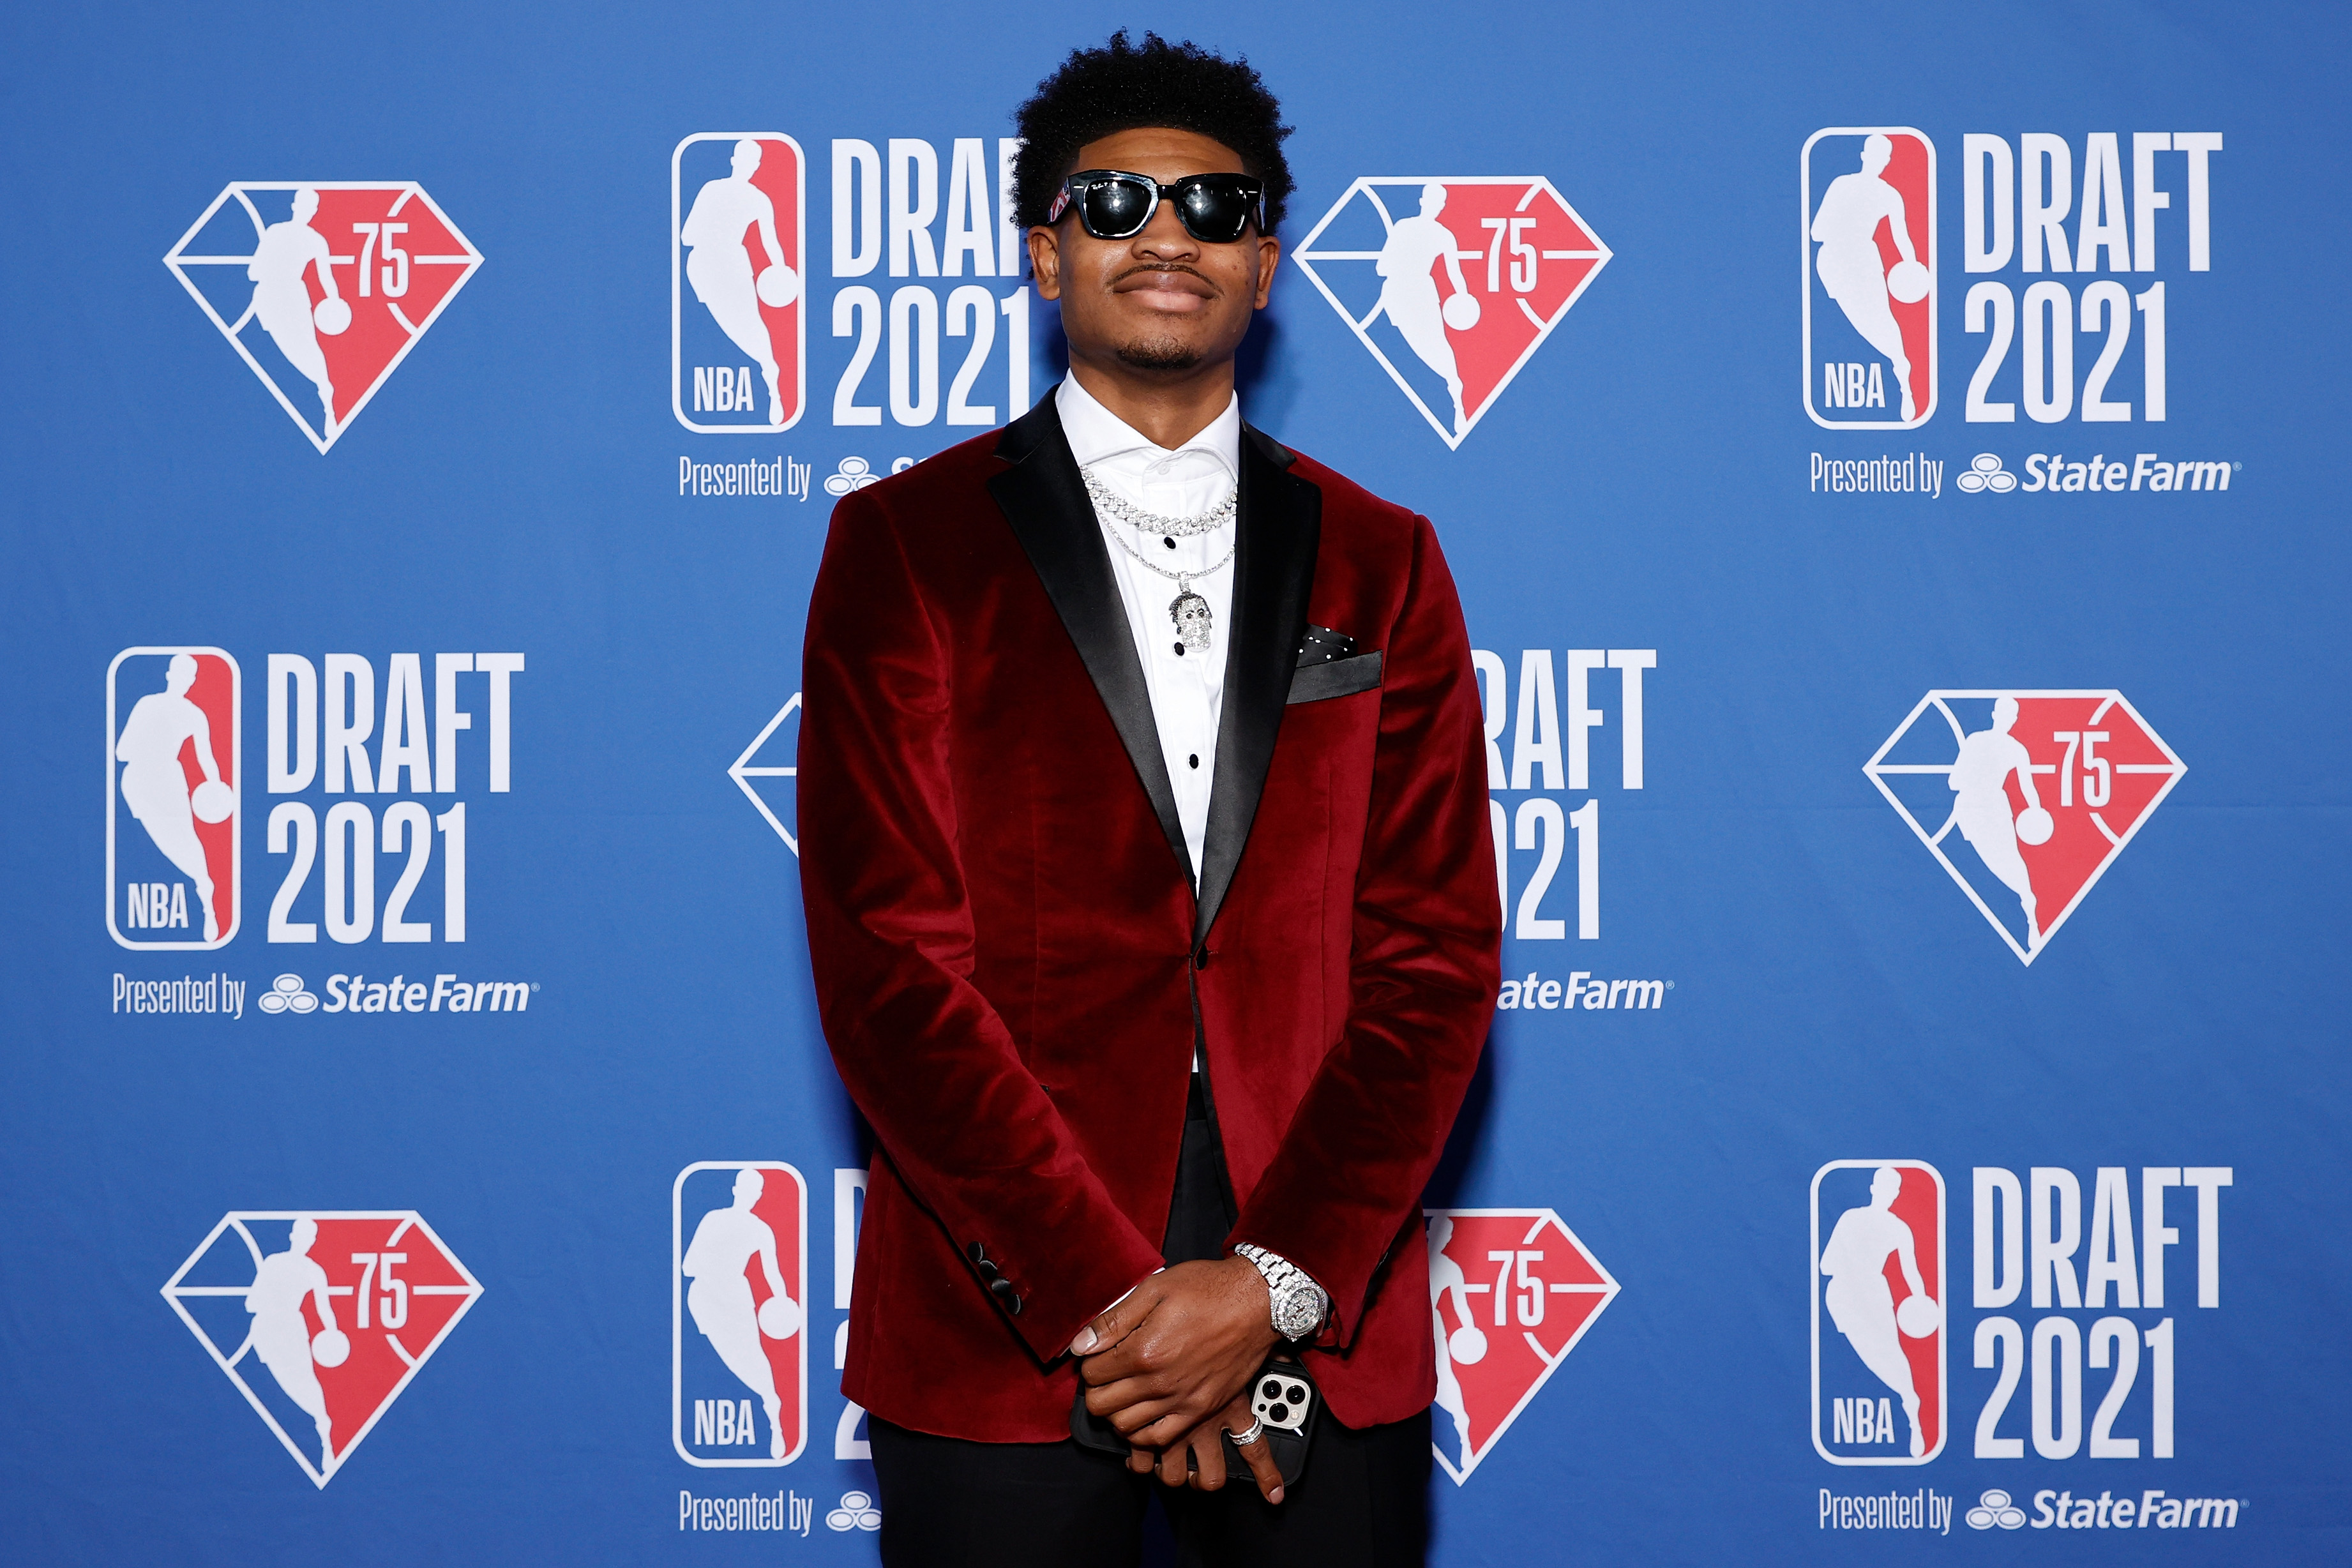 Cam Thomas poses for photos on the red carpet during the 2021 NBA Draft at the Barclays Center on July 29, 2021 in New York City.